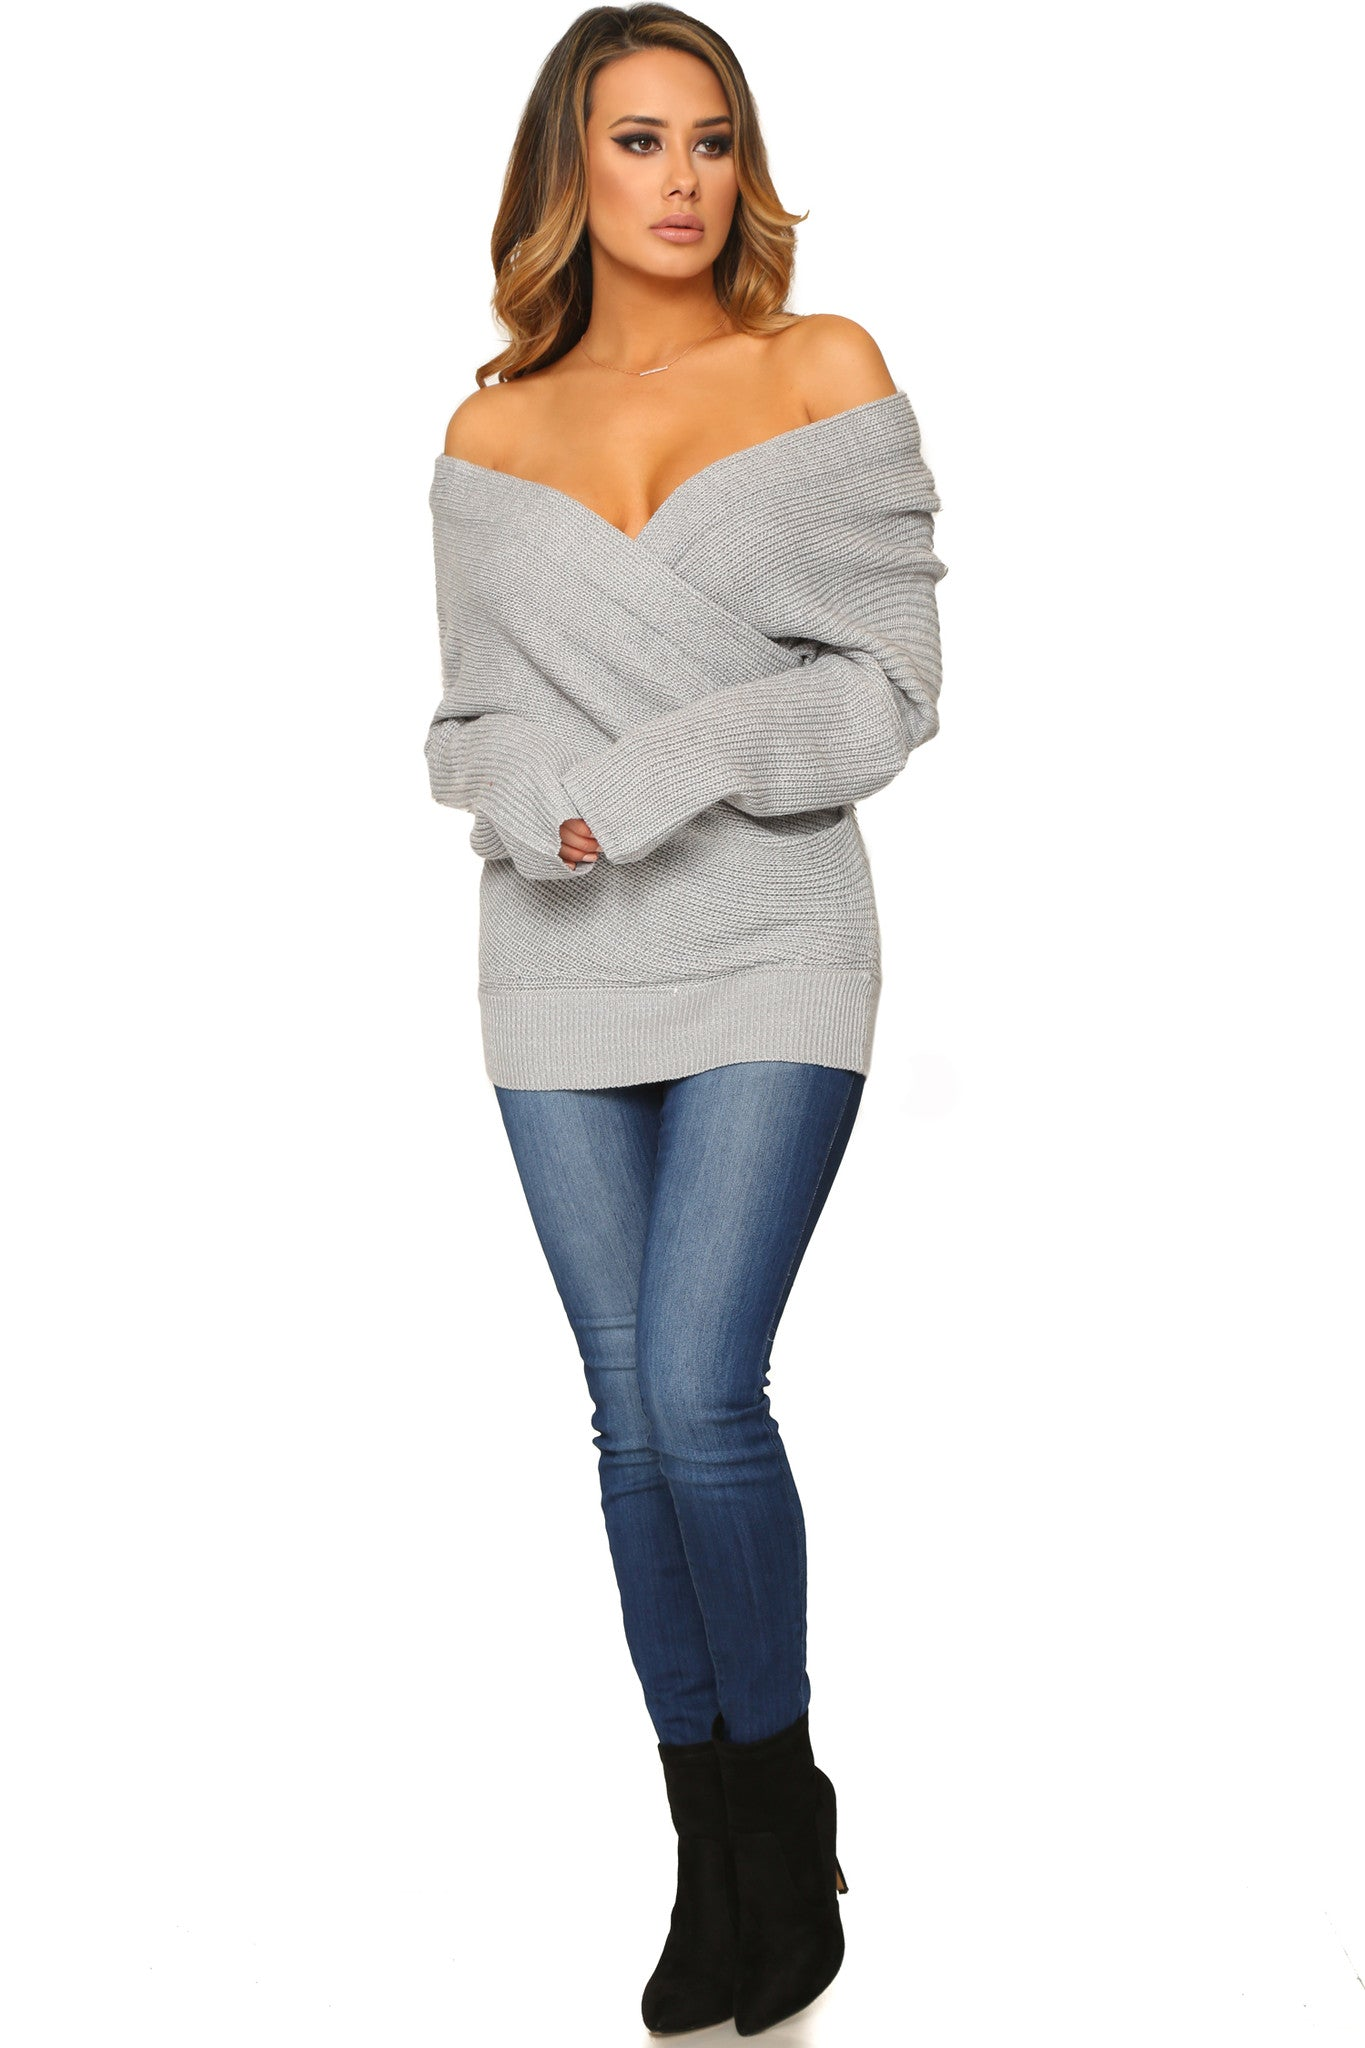 JANET SWEATER - Glam Envy - 1